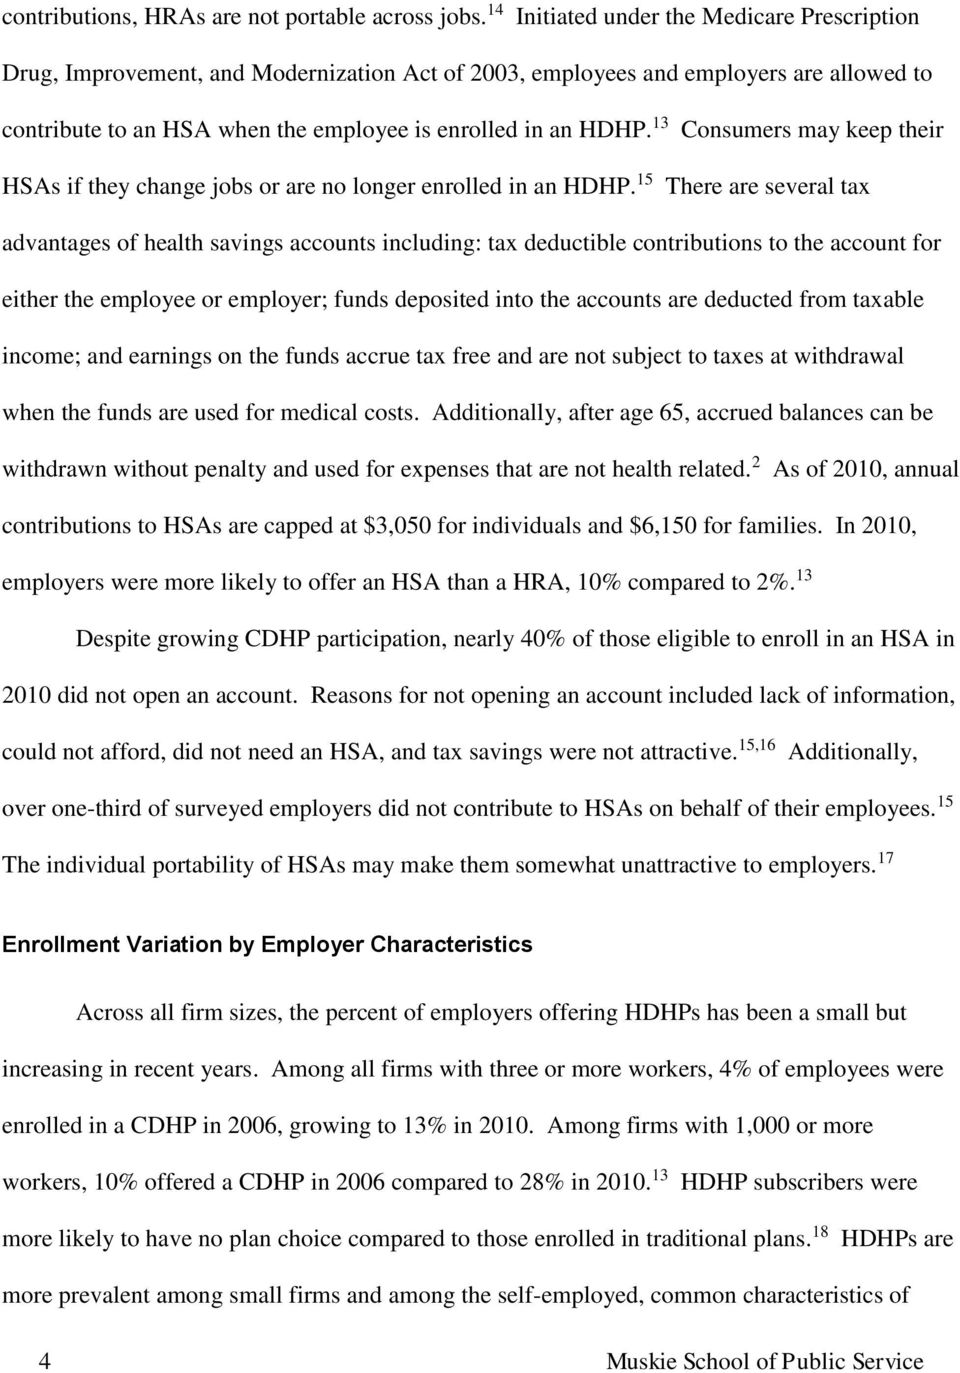 13 Consumers may keep their HSAs if they change jobs or are no longer enrolled in an HDHP.